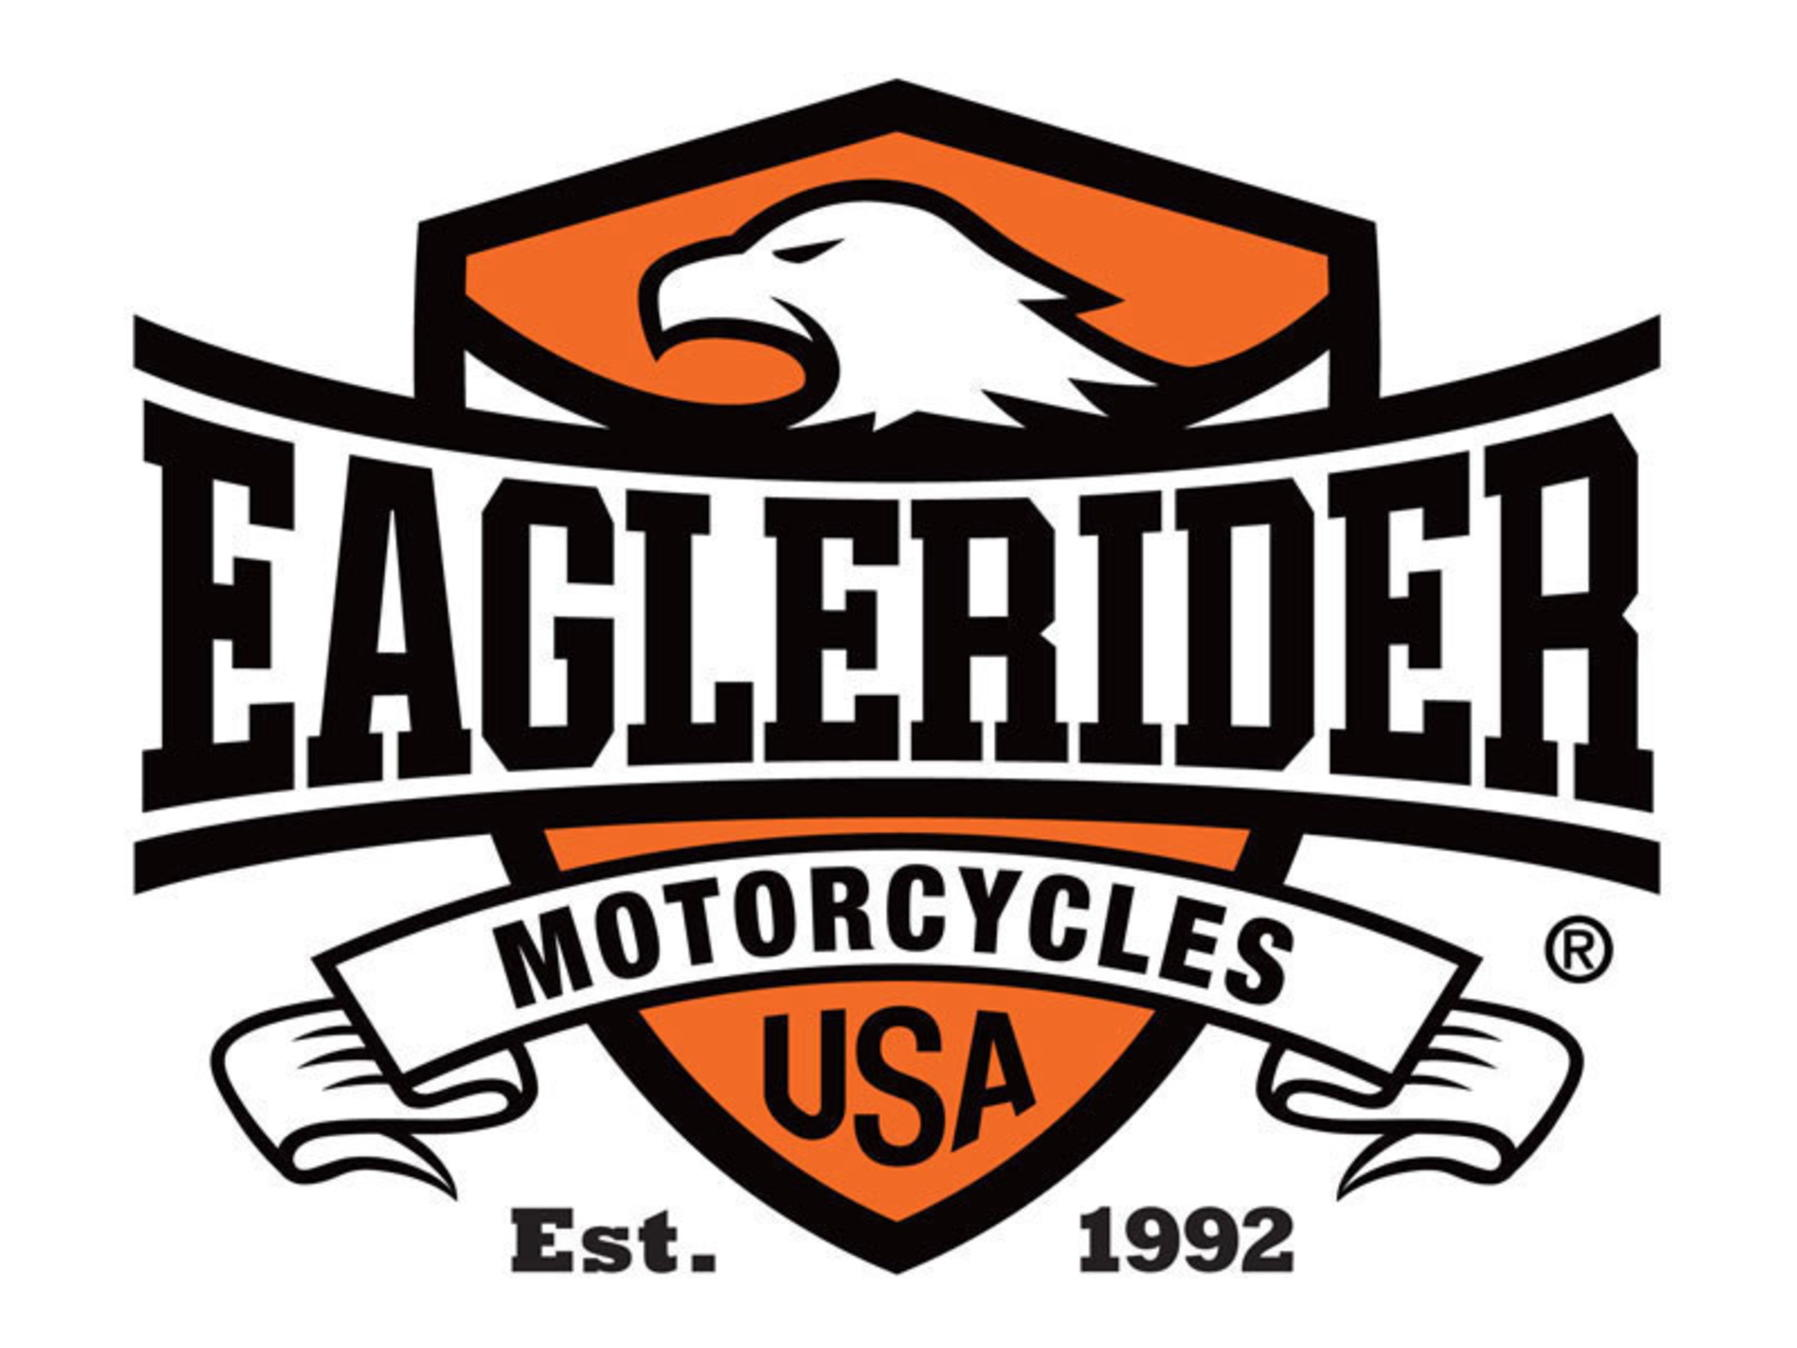 Logo for Eaglerider Motorcycles USA.